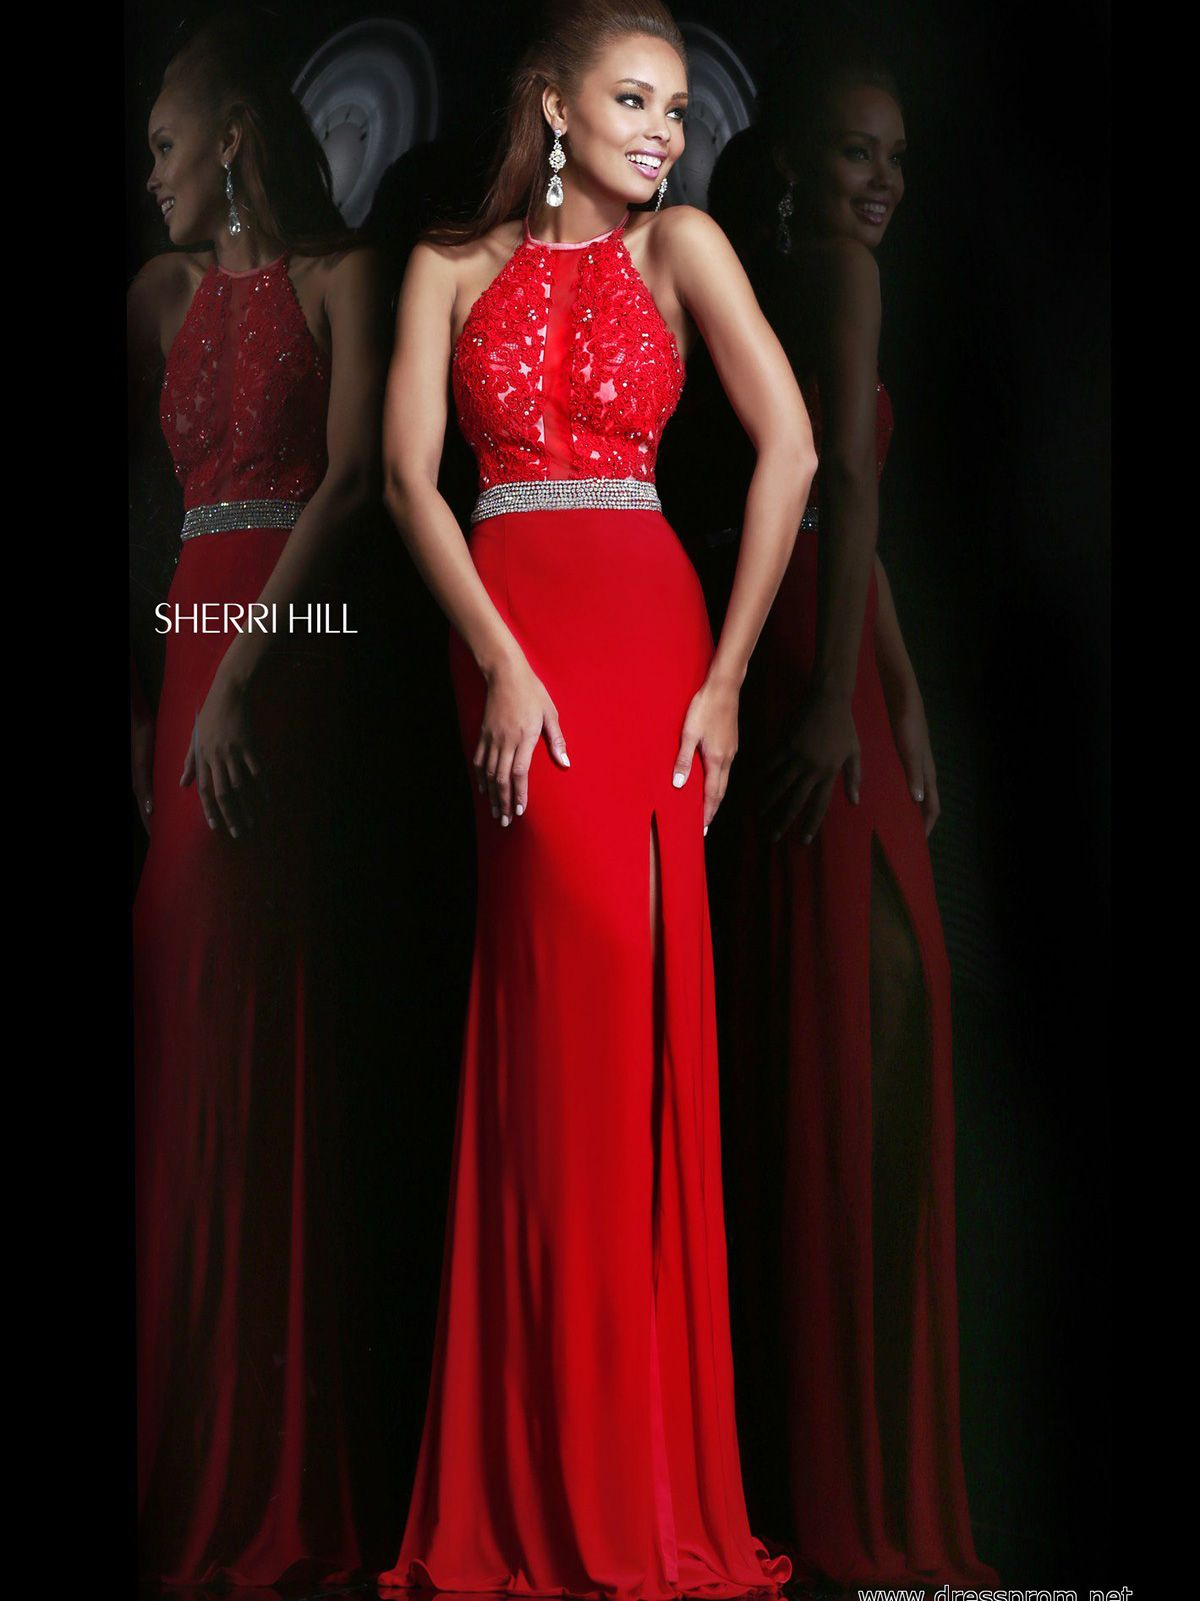 Indulge yourself by slipping into this red carpet inspired prom